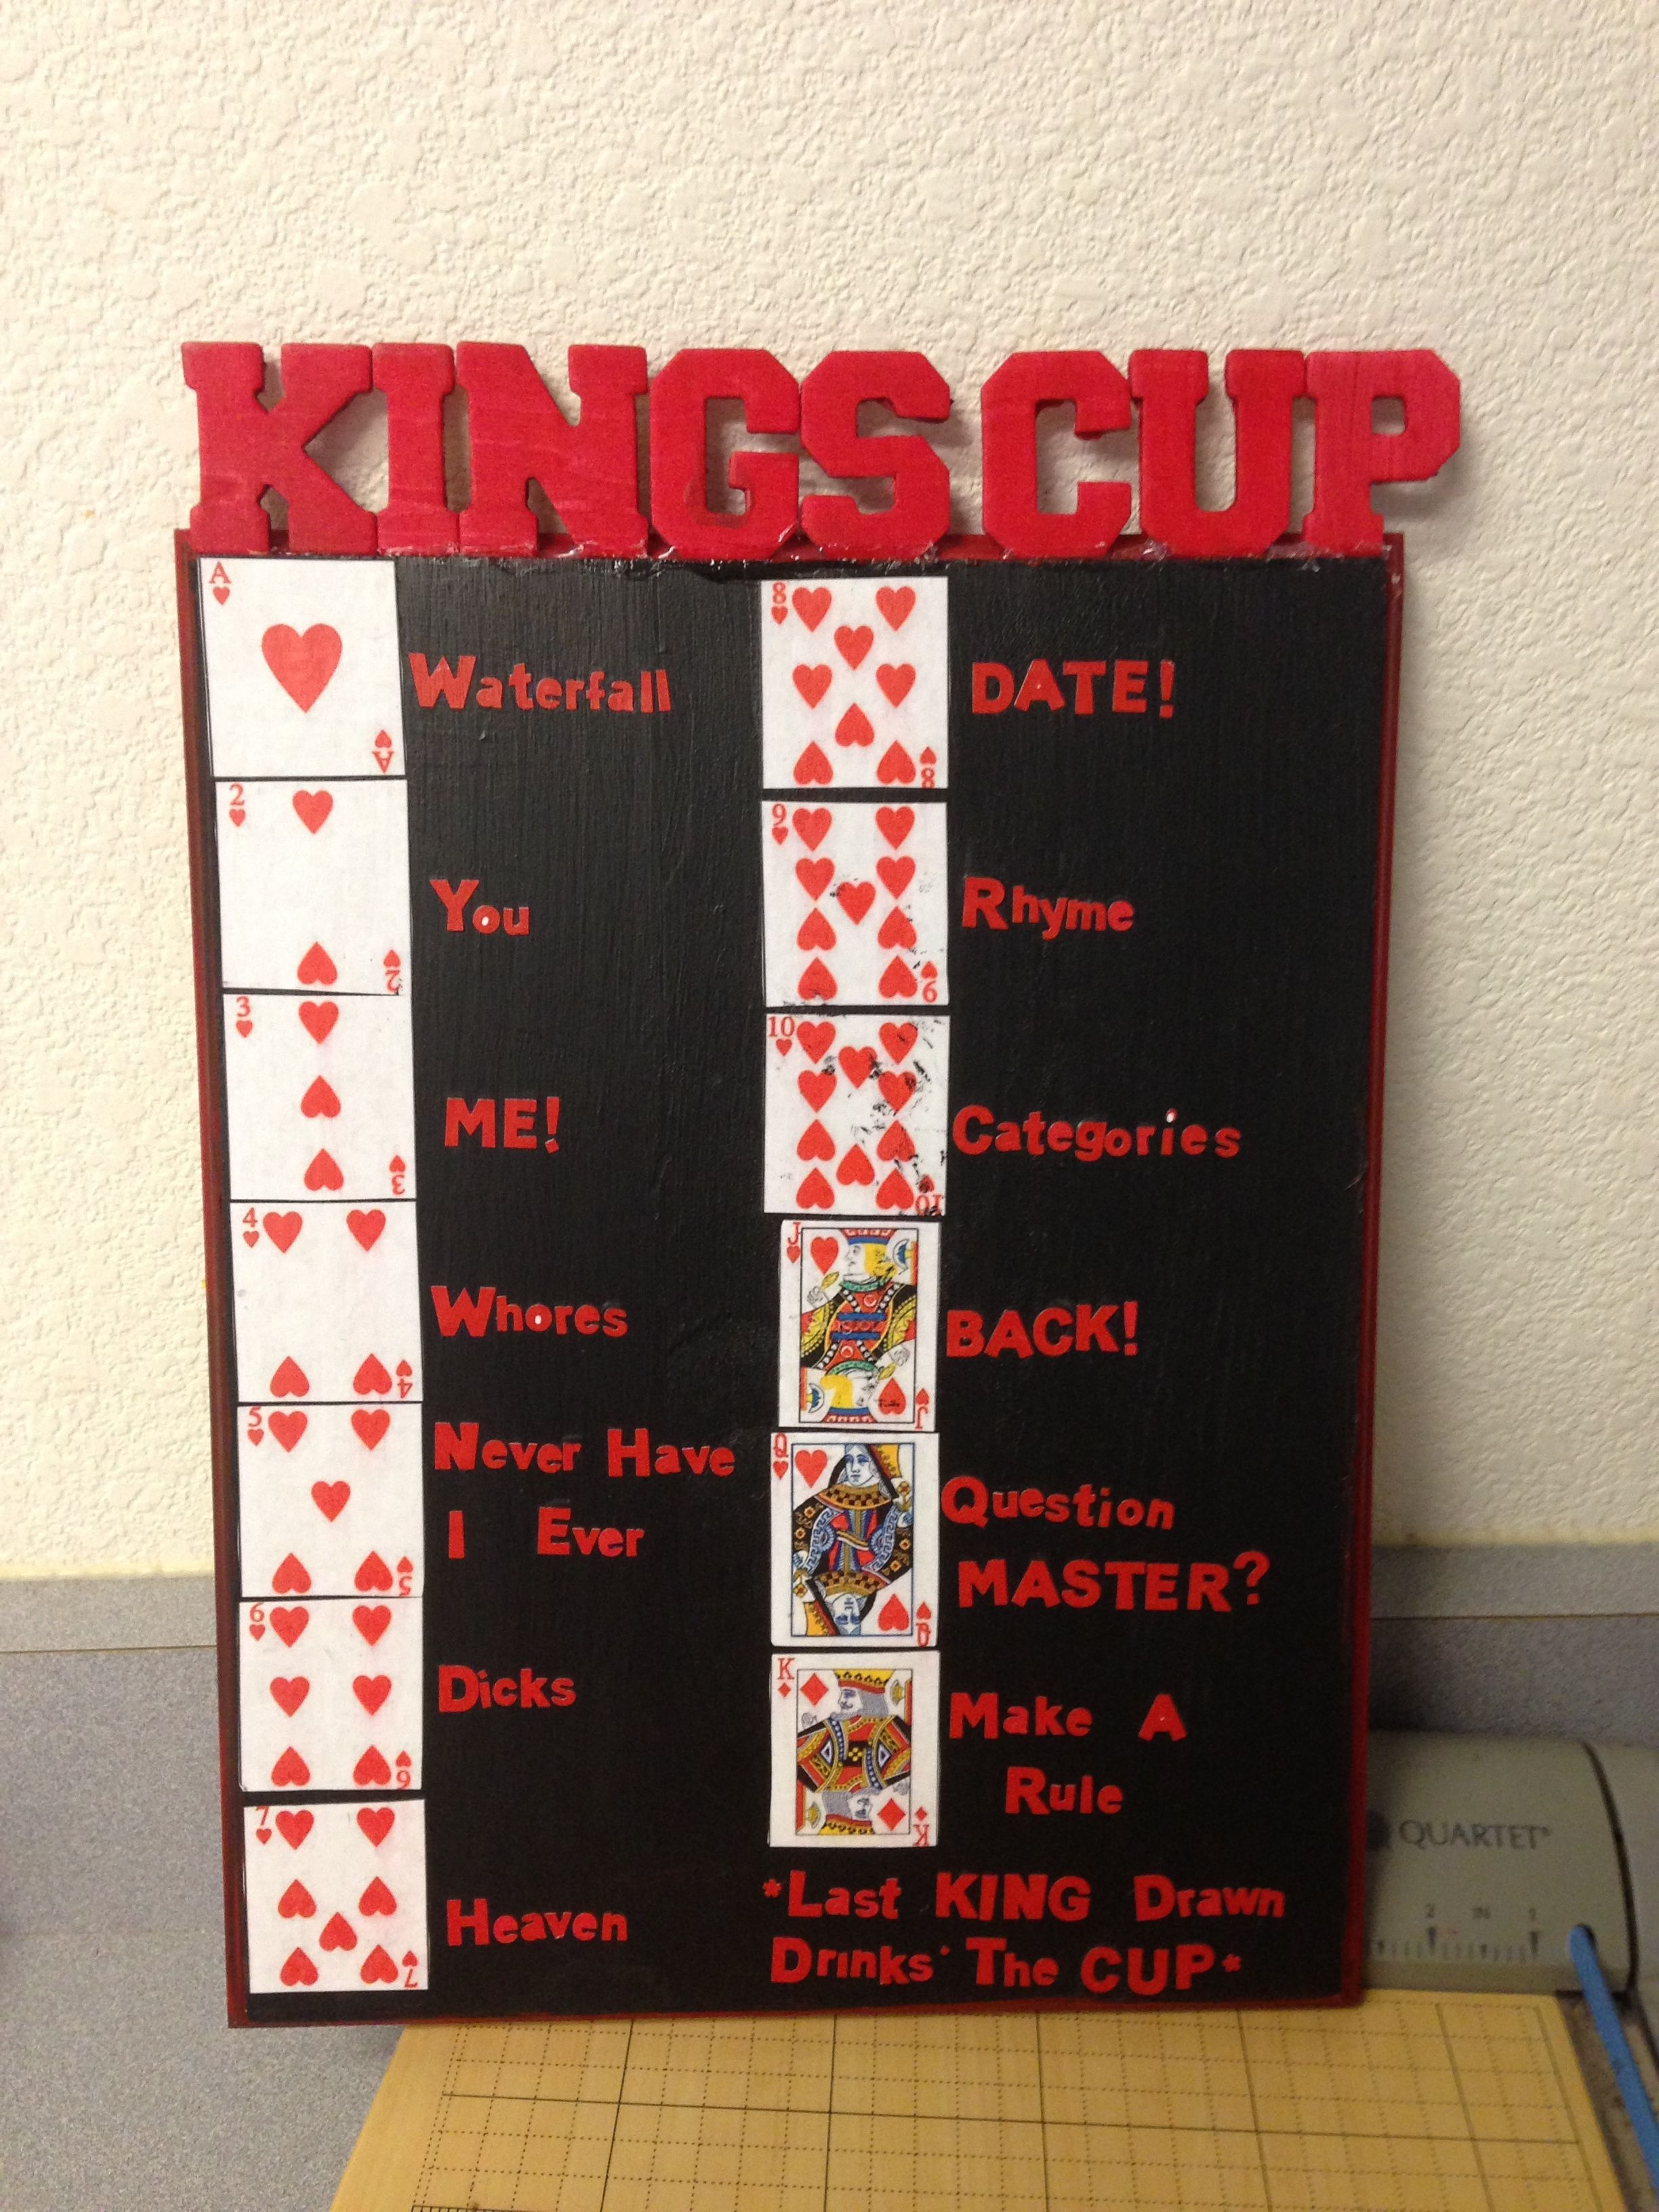 Kings Cup Rules Drinking Game! Fun Times! Camping